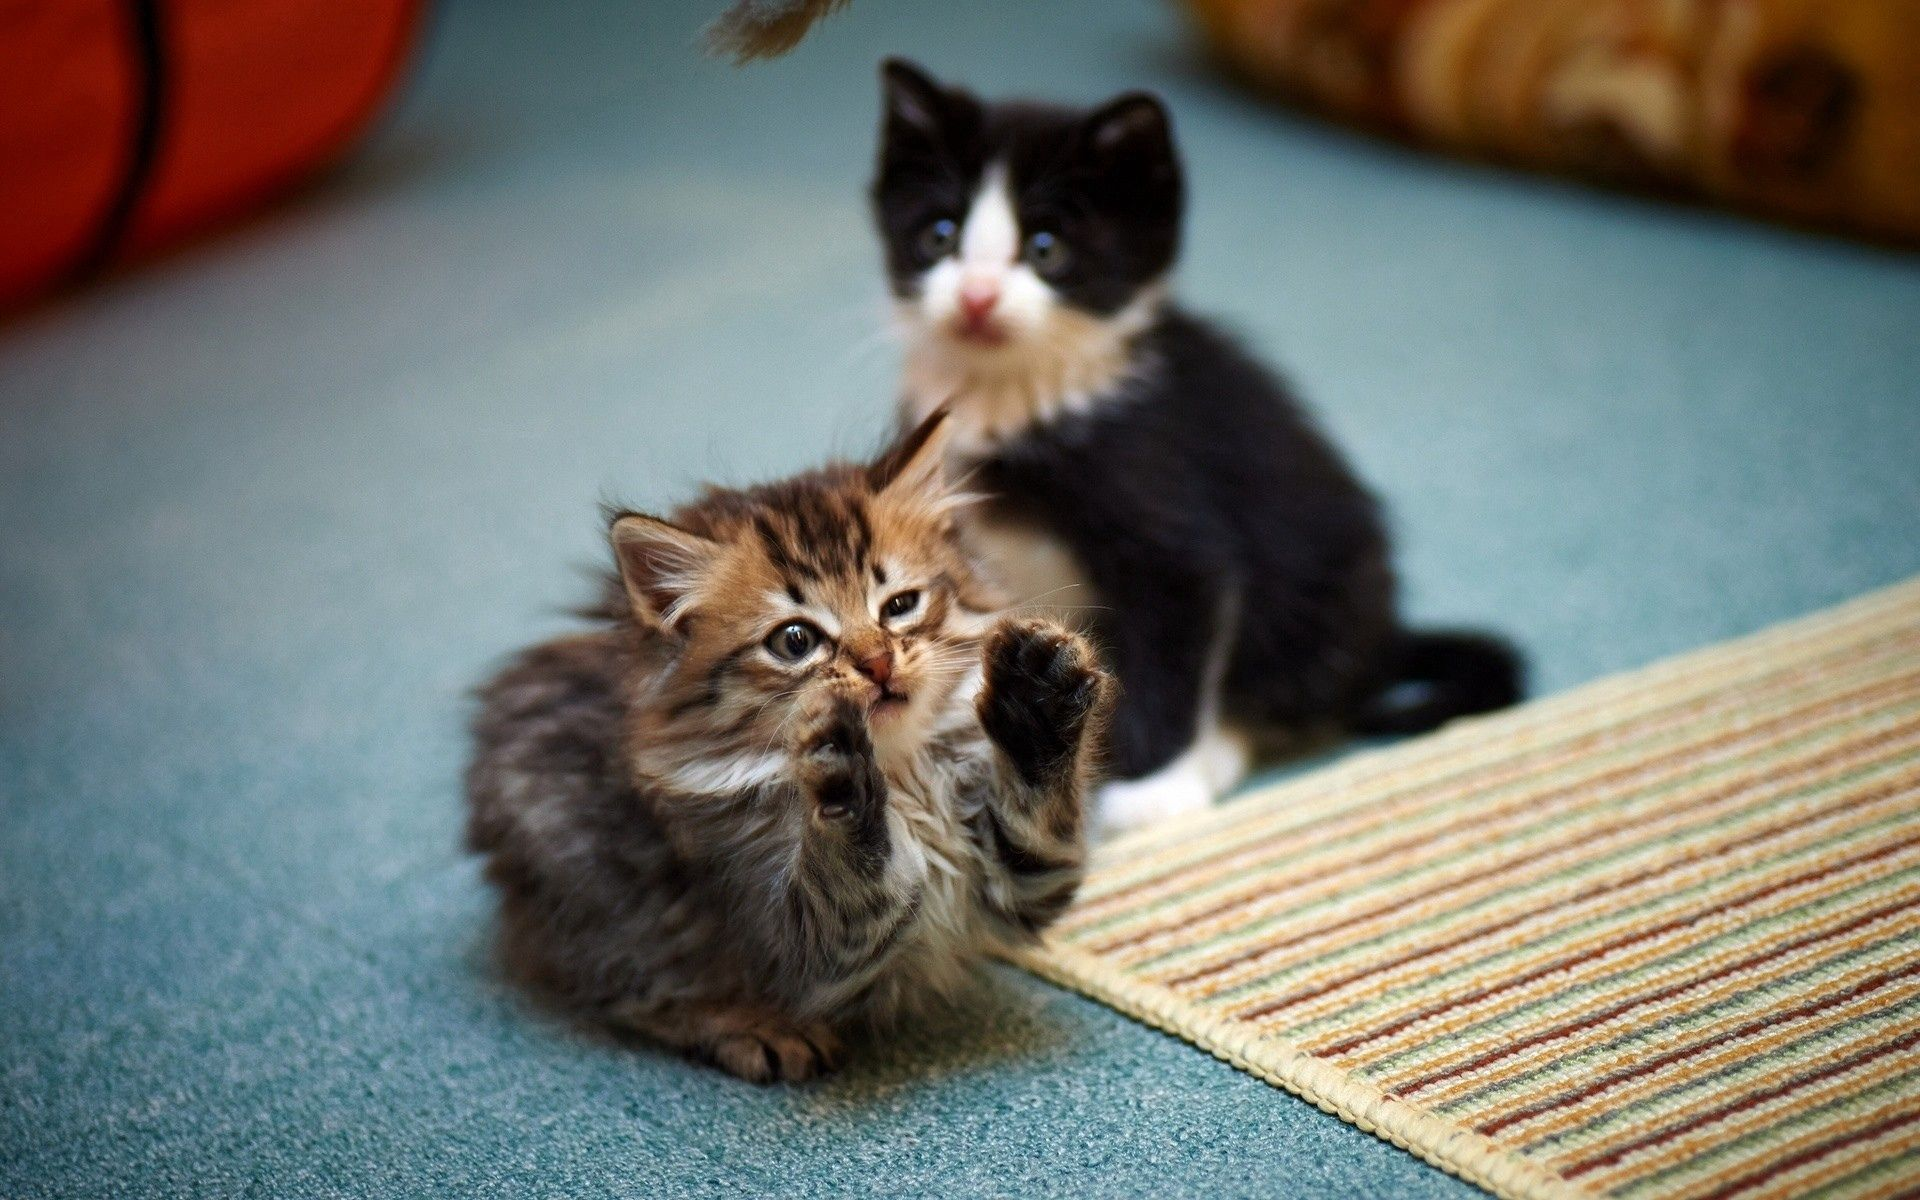 142769 download wallpaper Animals, Kittens, Couple, Pair, Playful, Cute screensavers and pictures for free